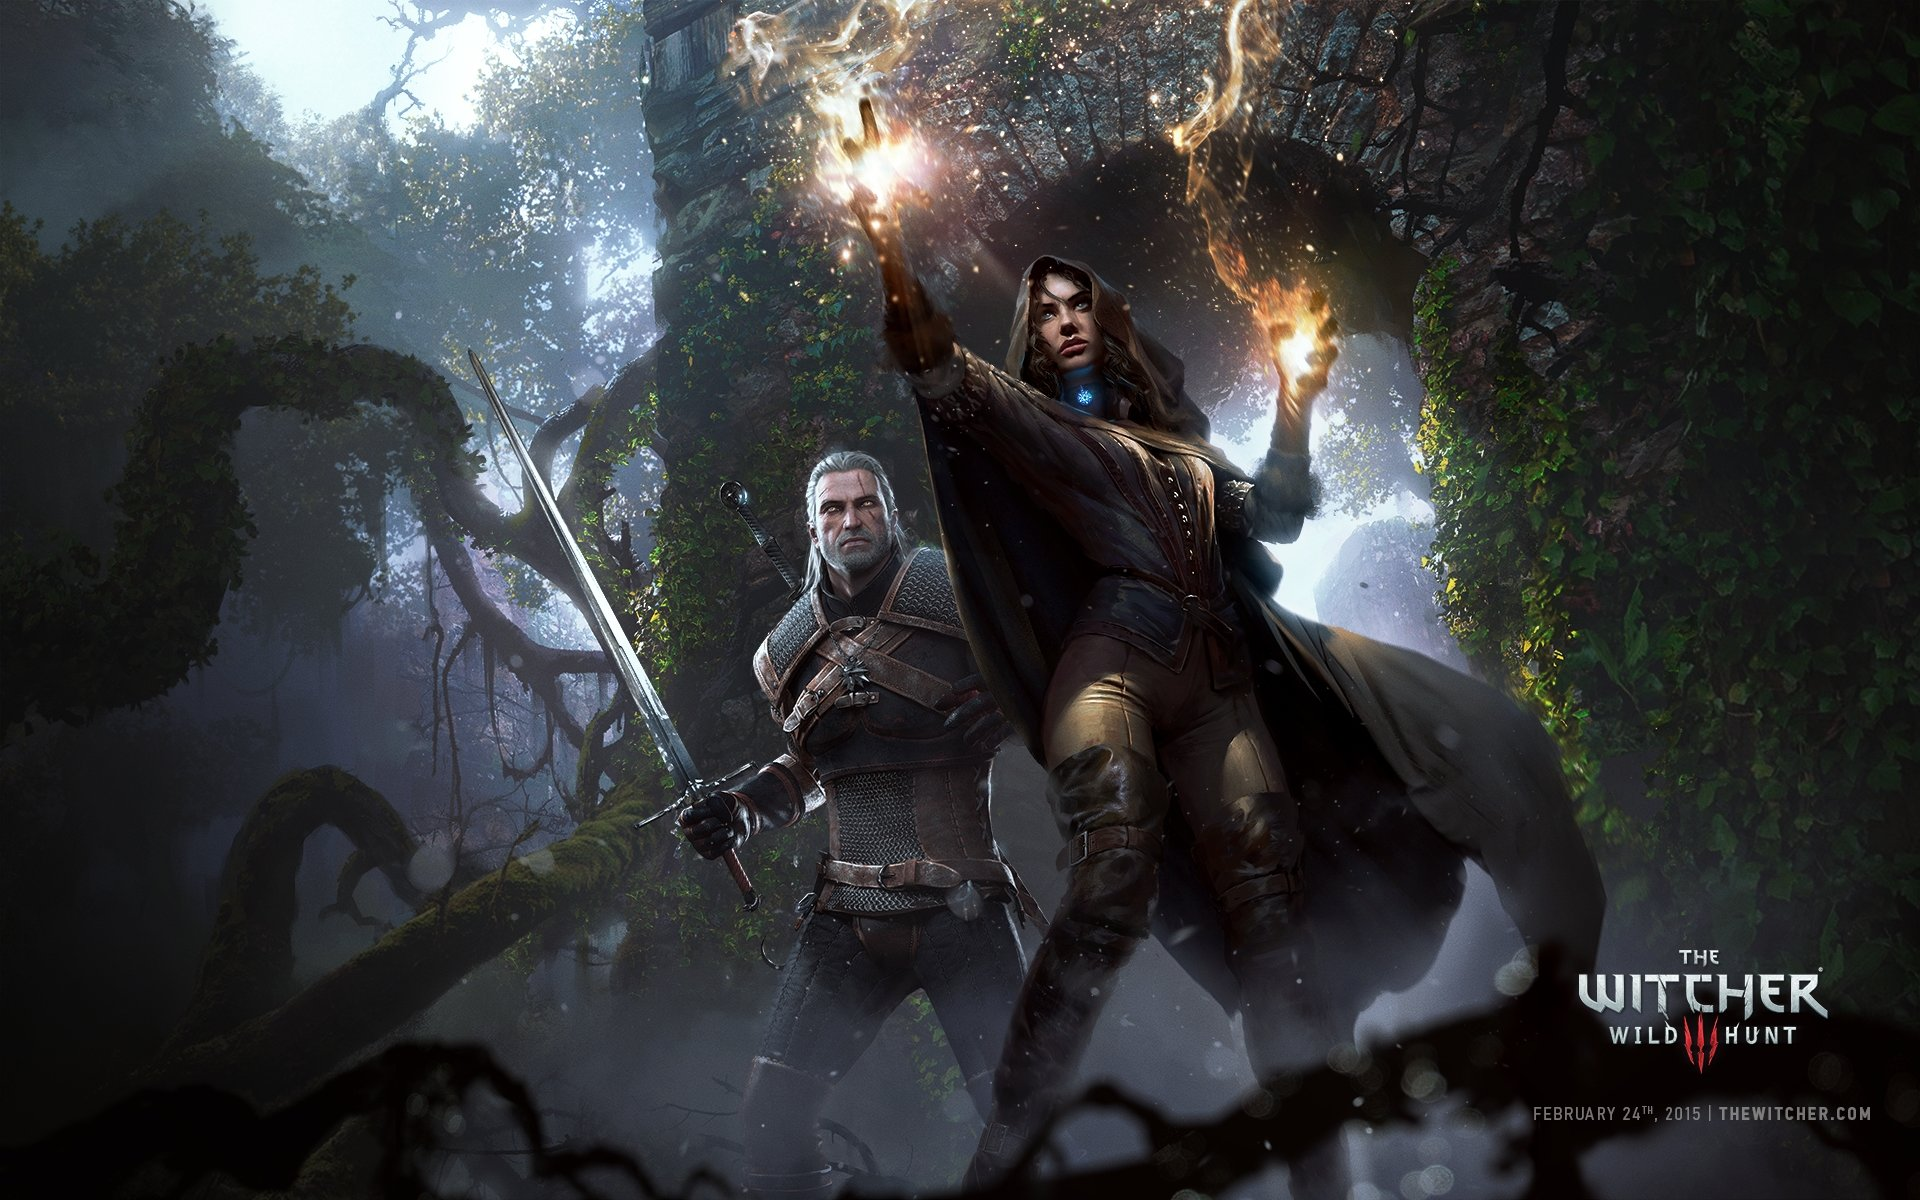 Download hd 1920x1200 The Witcher 3: Wild Hunt desktop wallpaper ID:17894 for free